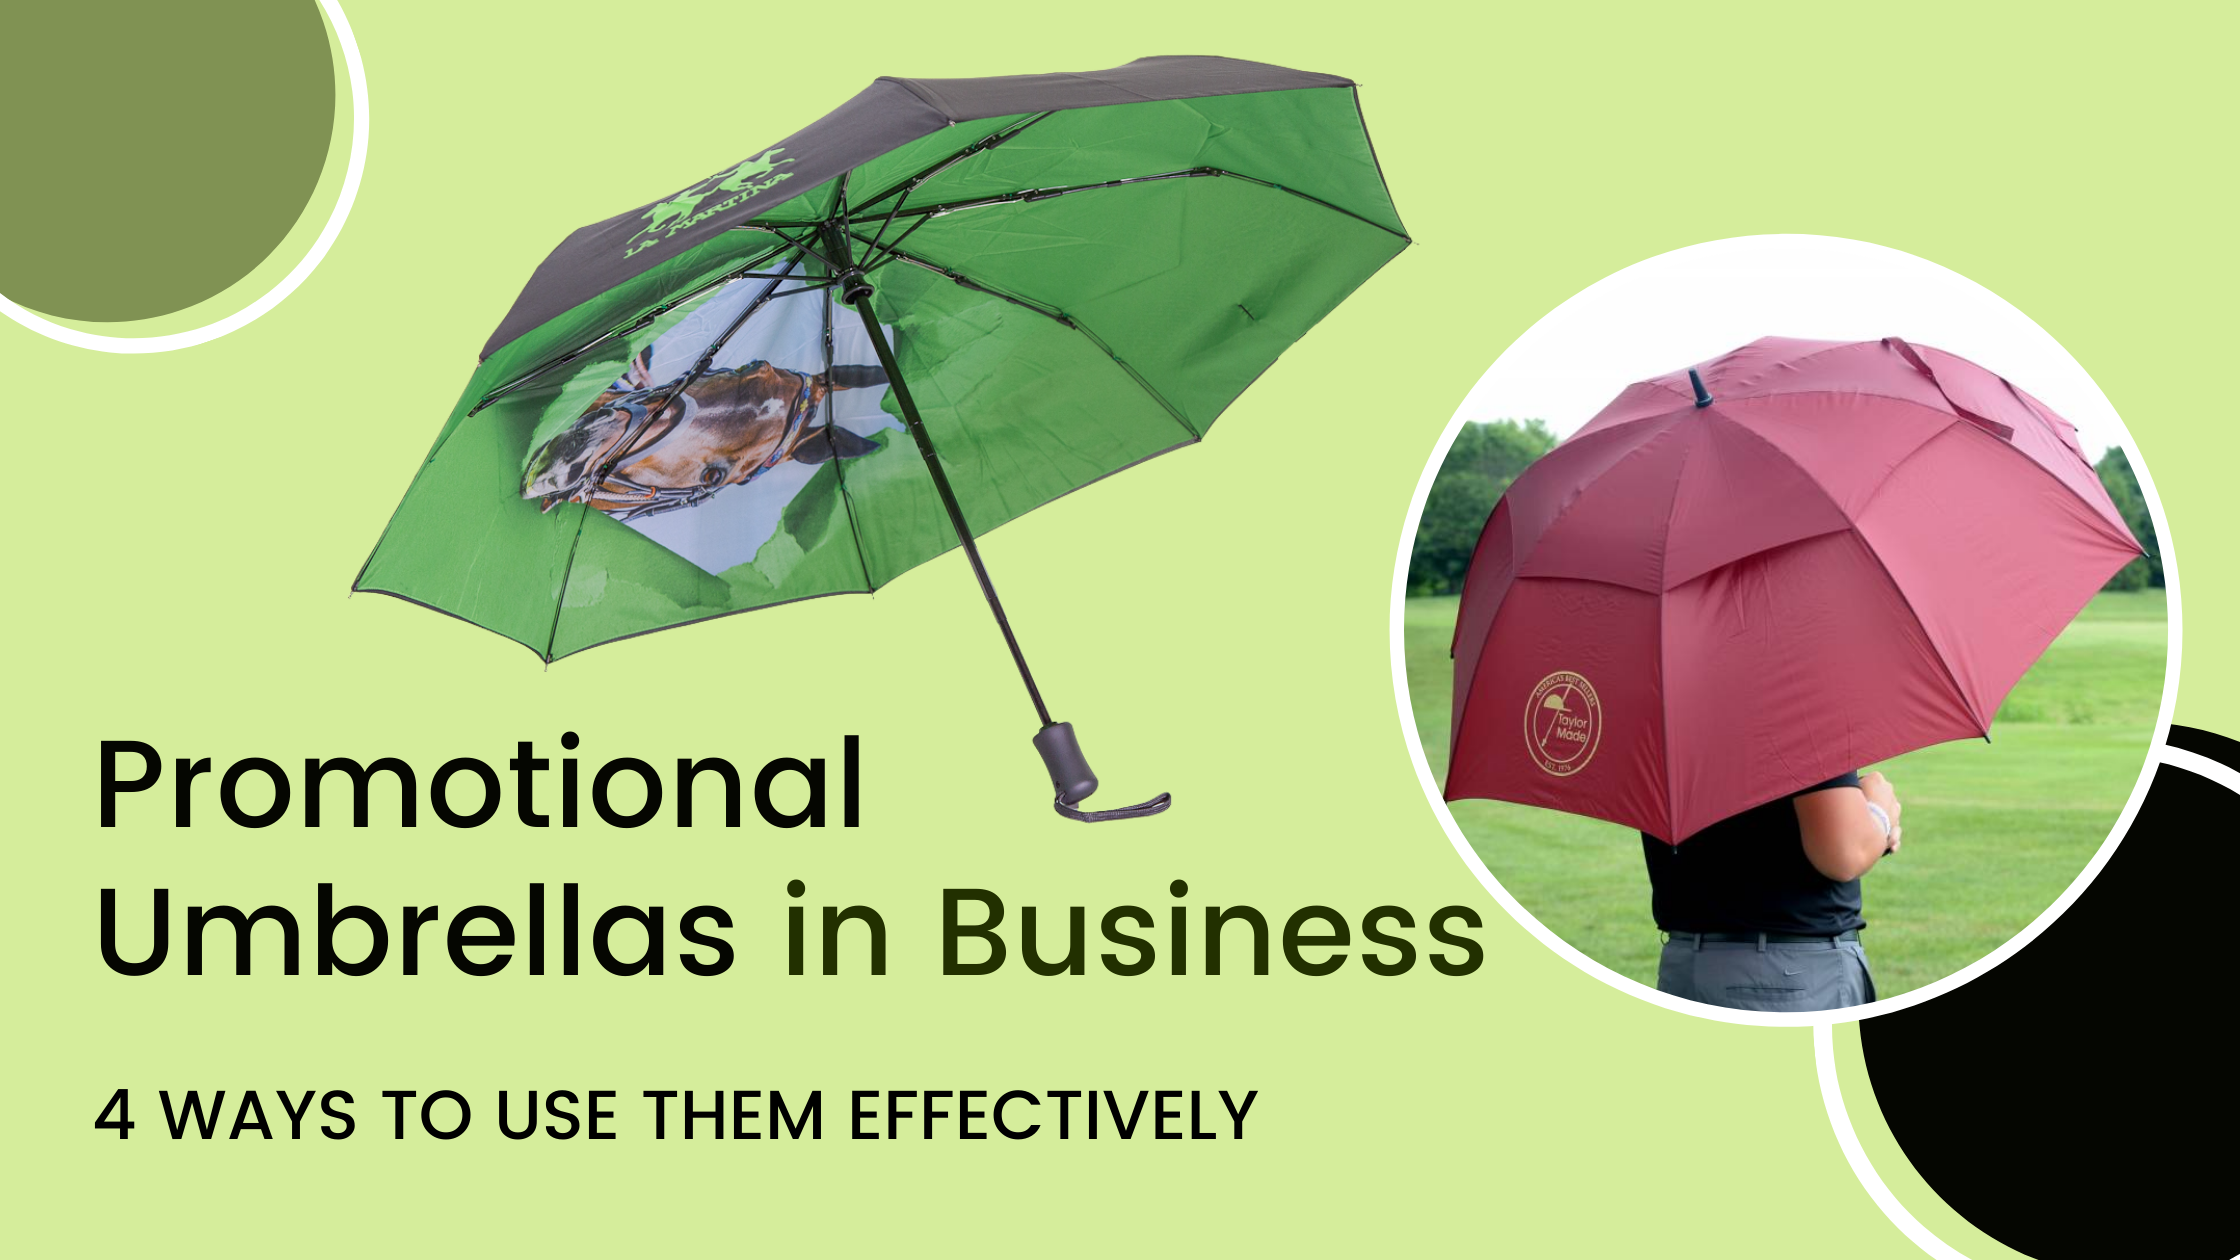 4 Ways to use promotional umbrellas in Business